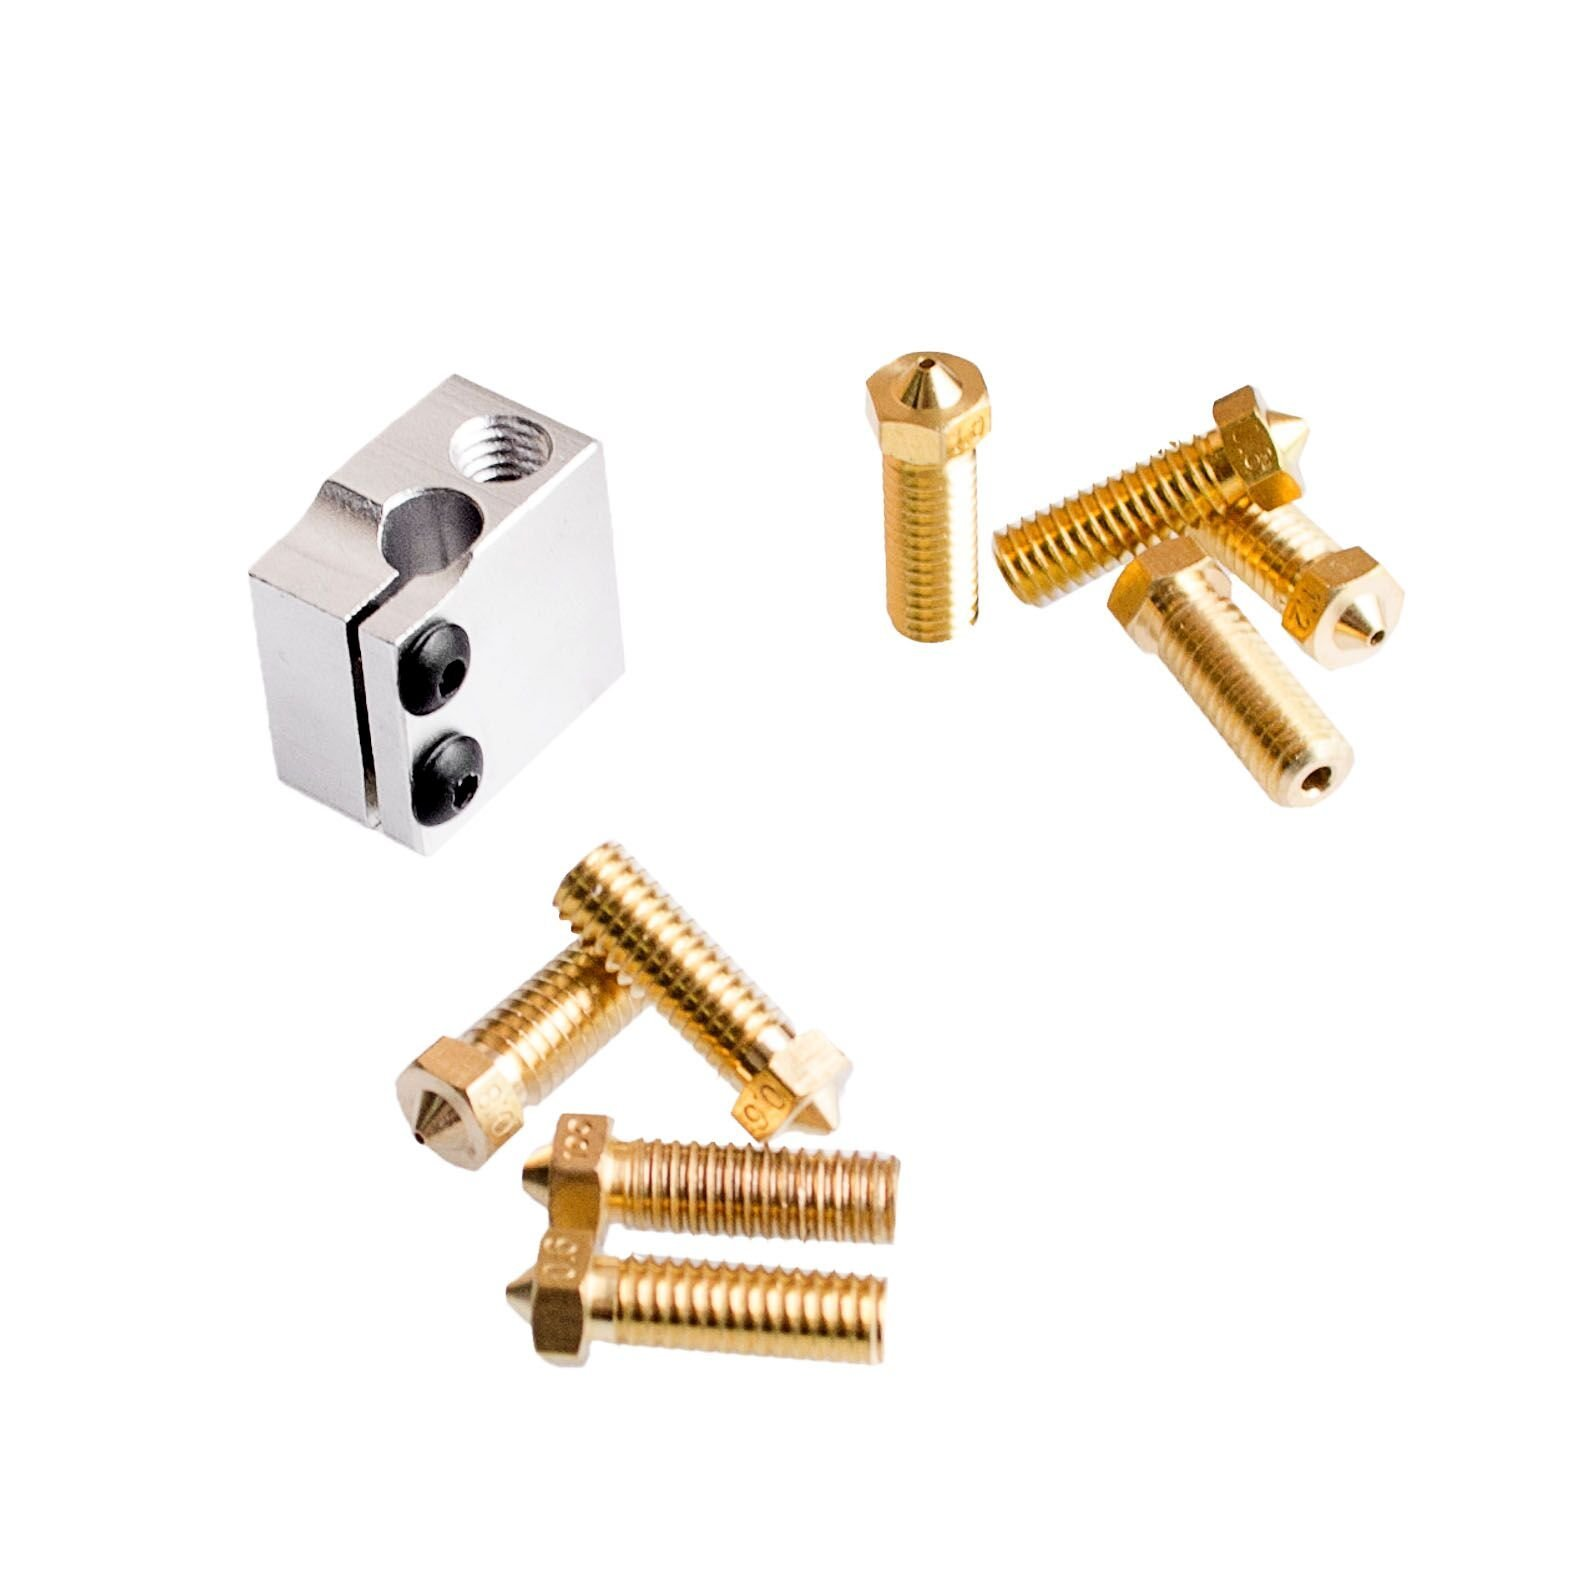 Wangdd22 High Speed V6 Print Pack for RepRap 3D Printer 1.75/3mm Filament Metal Hotend Volcano Extra Nozzles + Heater Block+NTC 3950 Thermistor by Wangdd22 (Image #3)